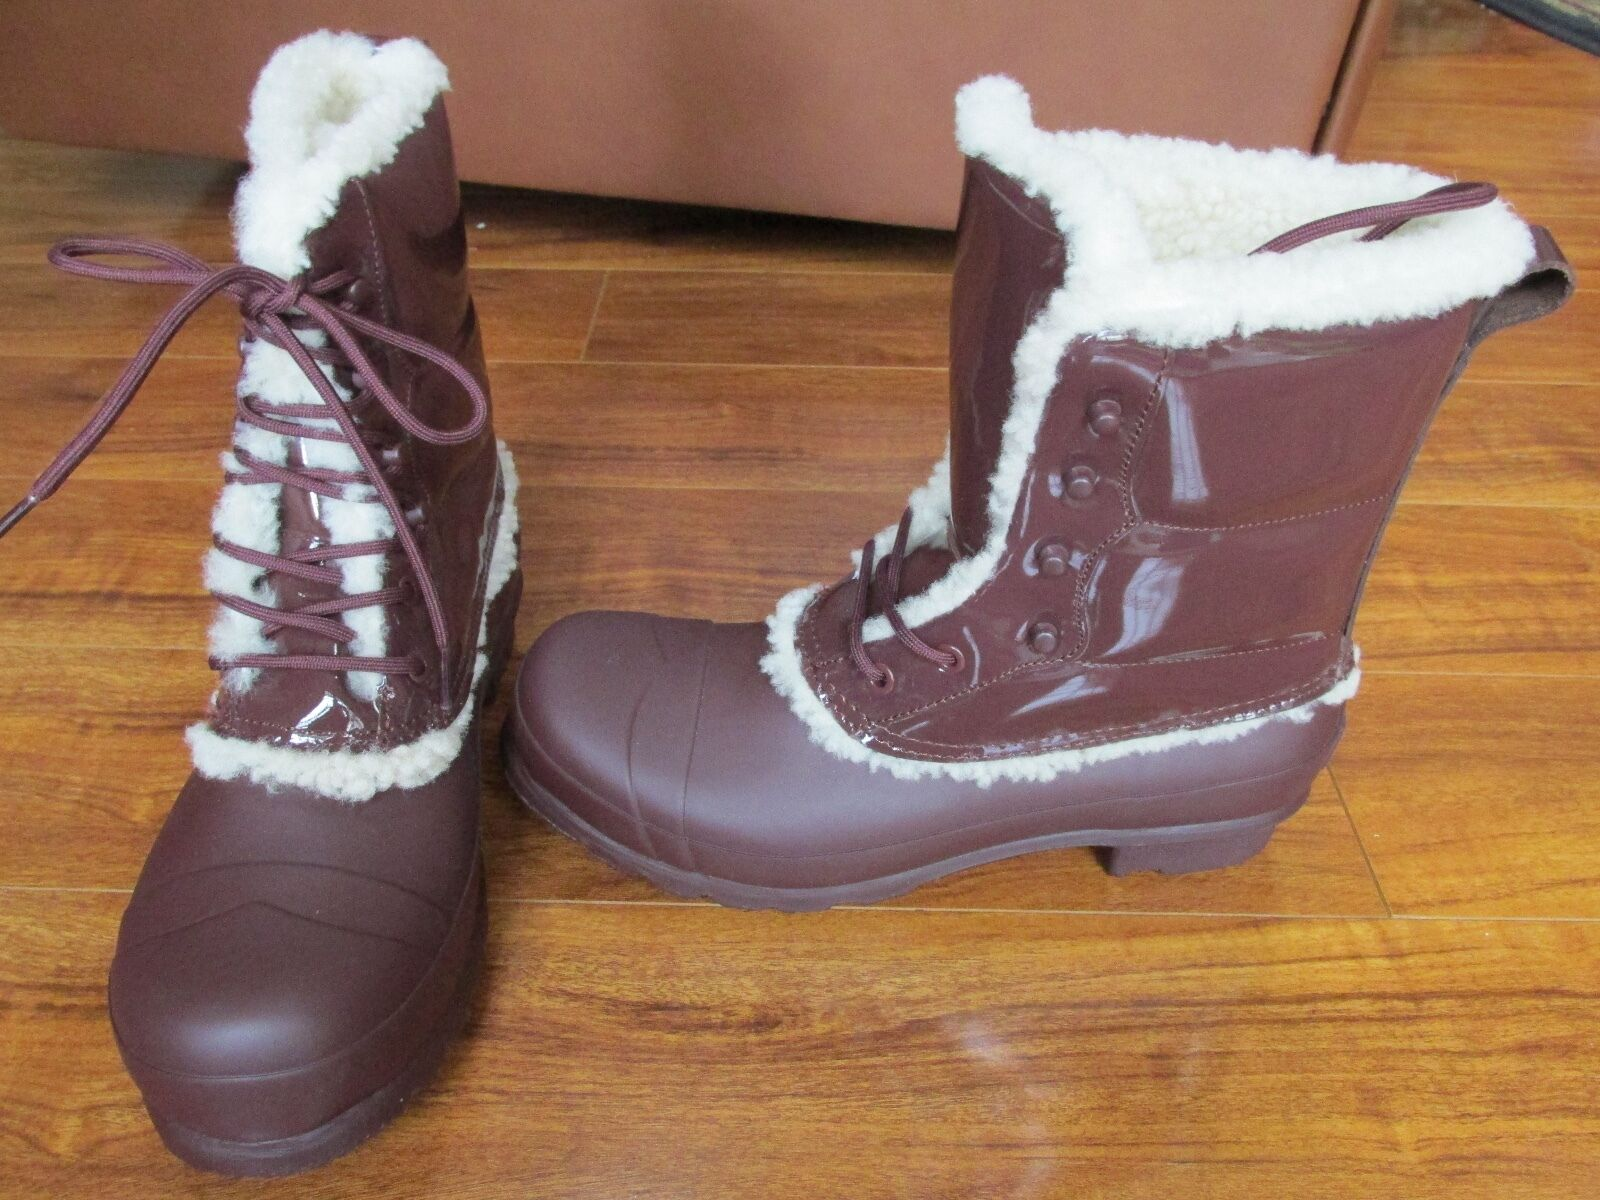 NEW HUNTER Original Patent Leather Lace Up Shearling Lined Rain Boots WOMENS 10